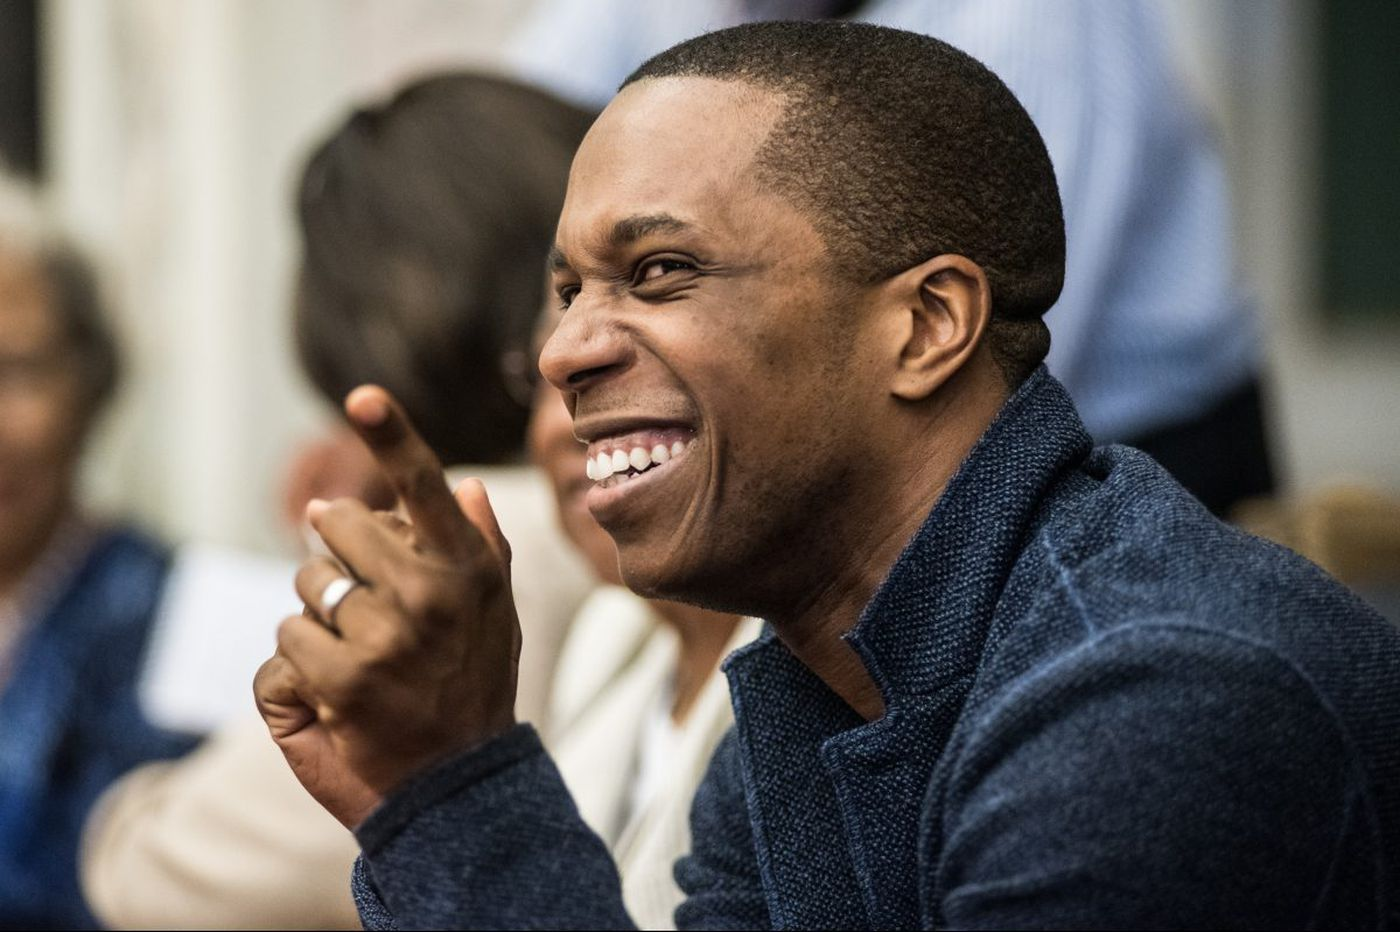 Philly's own Leslie Odom Jr. to perform 'America the Beautiful' at Super Bowl LII